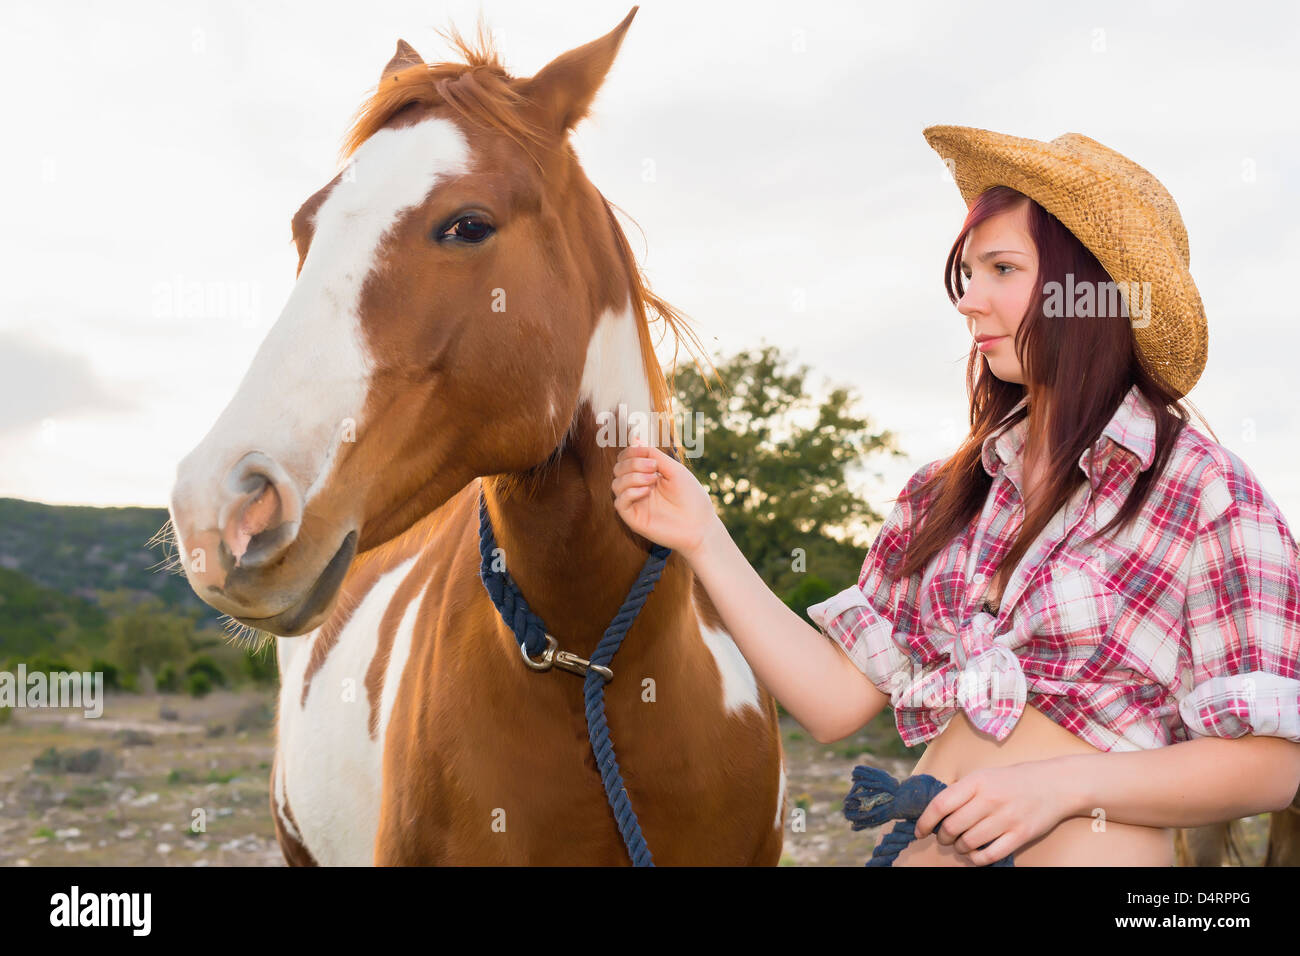 Female teenager petting a horse, Female 19 Caucasian - Stock Image